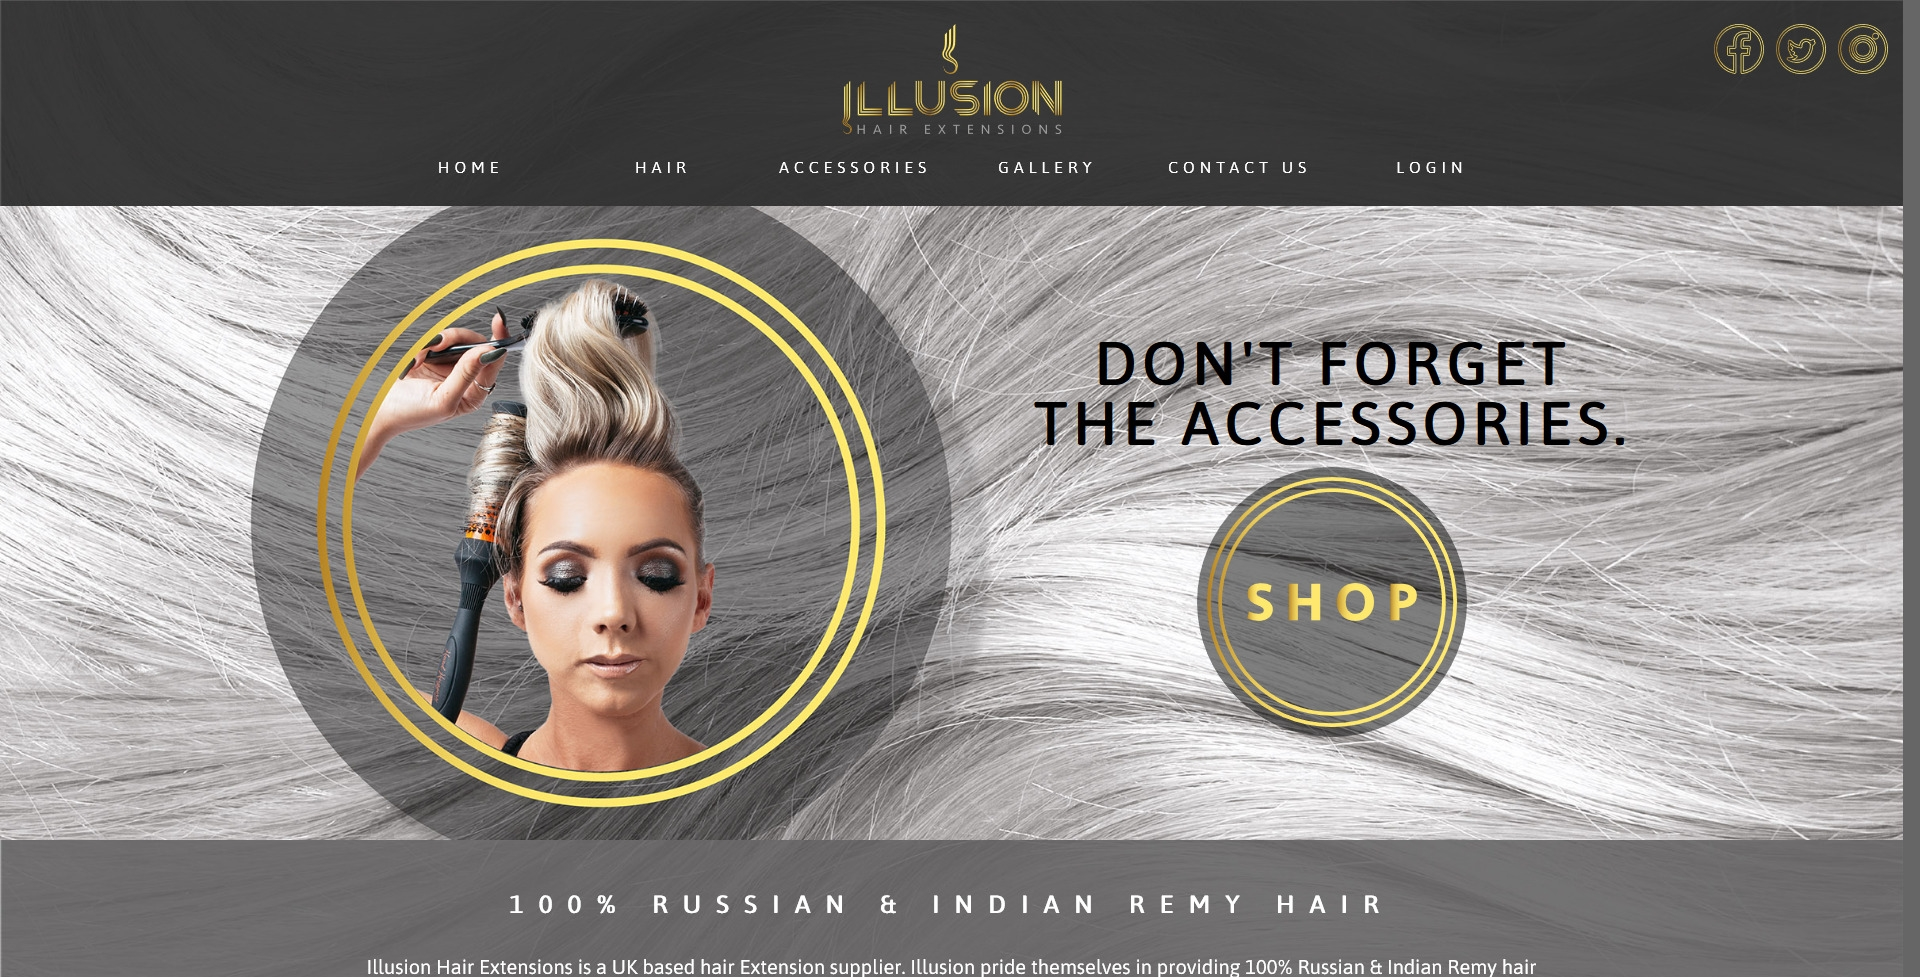 illusionhairextensions.co.uk